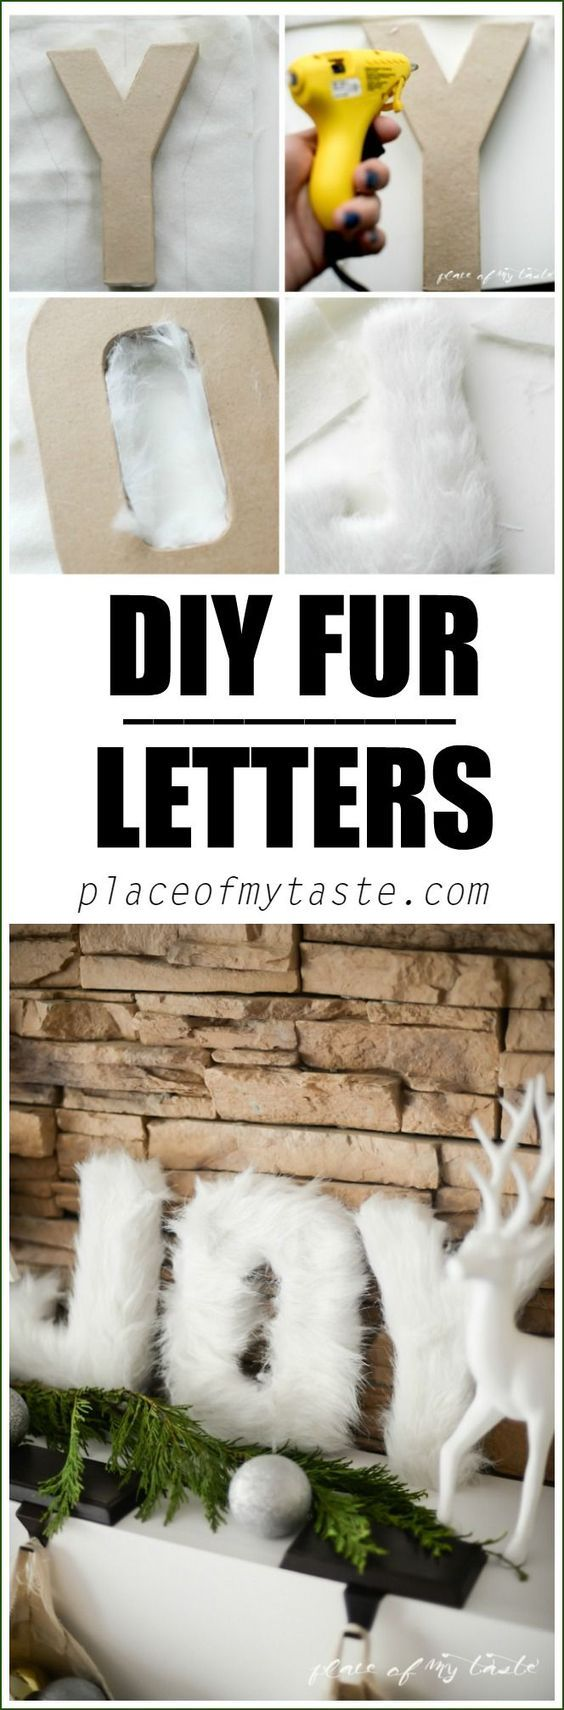 DIY Fur Letters Christmas Mantel Decorations Tutorial | Place of My Taste